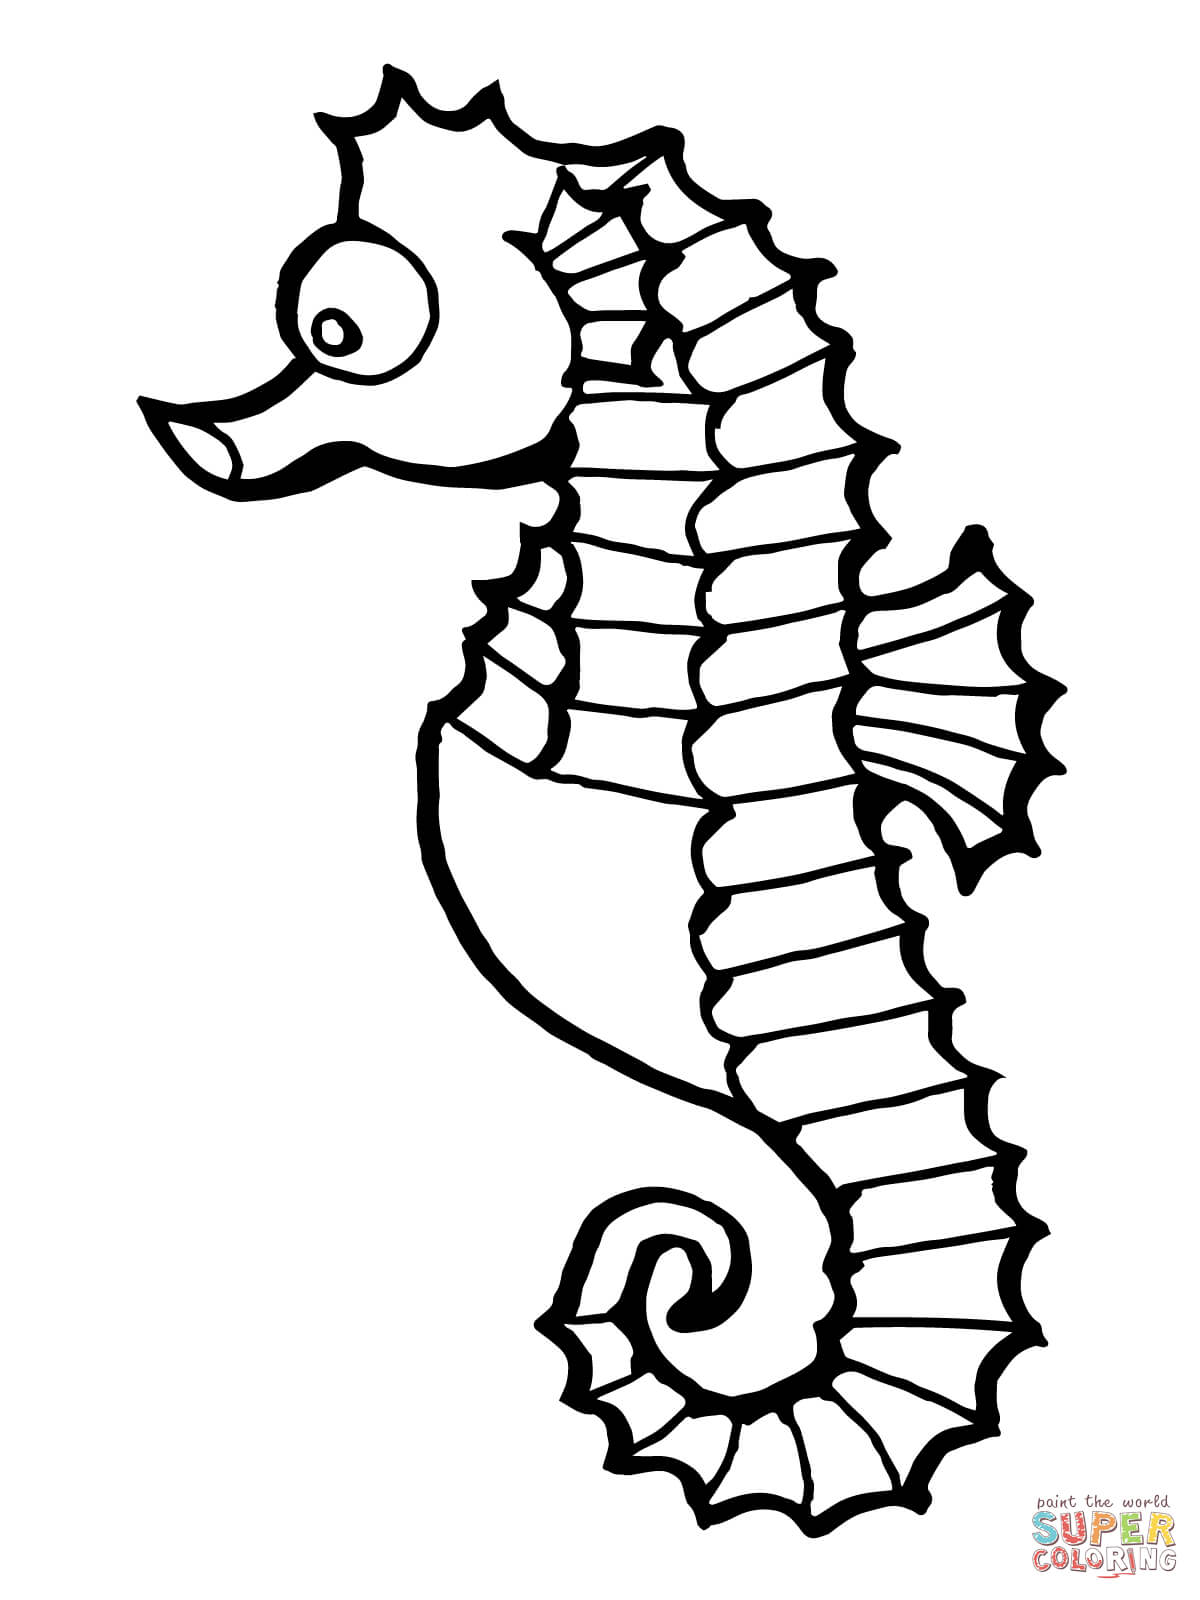 1200x1600 The Truth About Fish Colouring Template Drawing For At Getdrawings